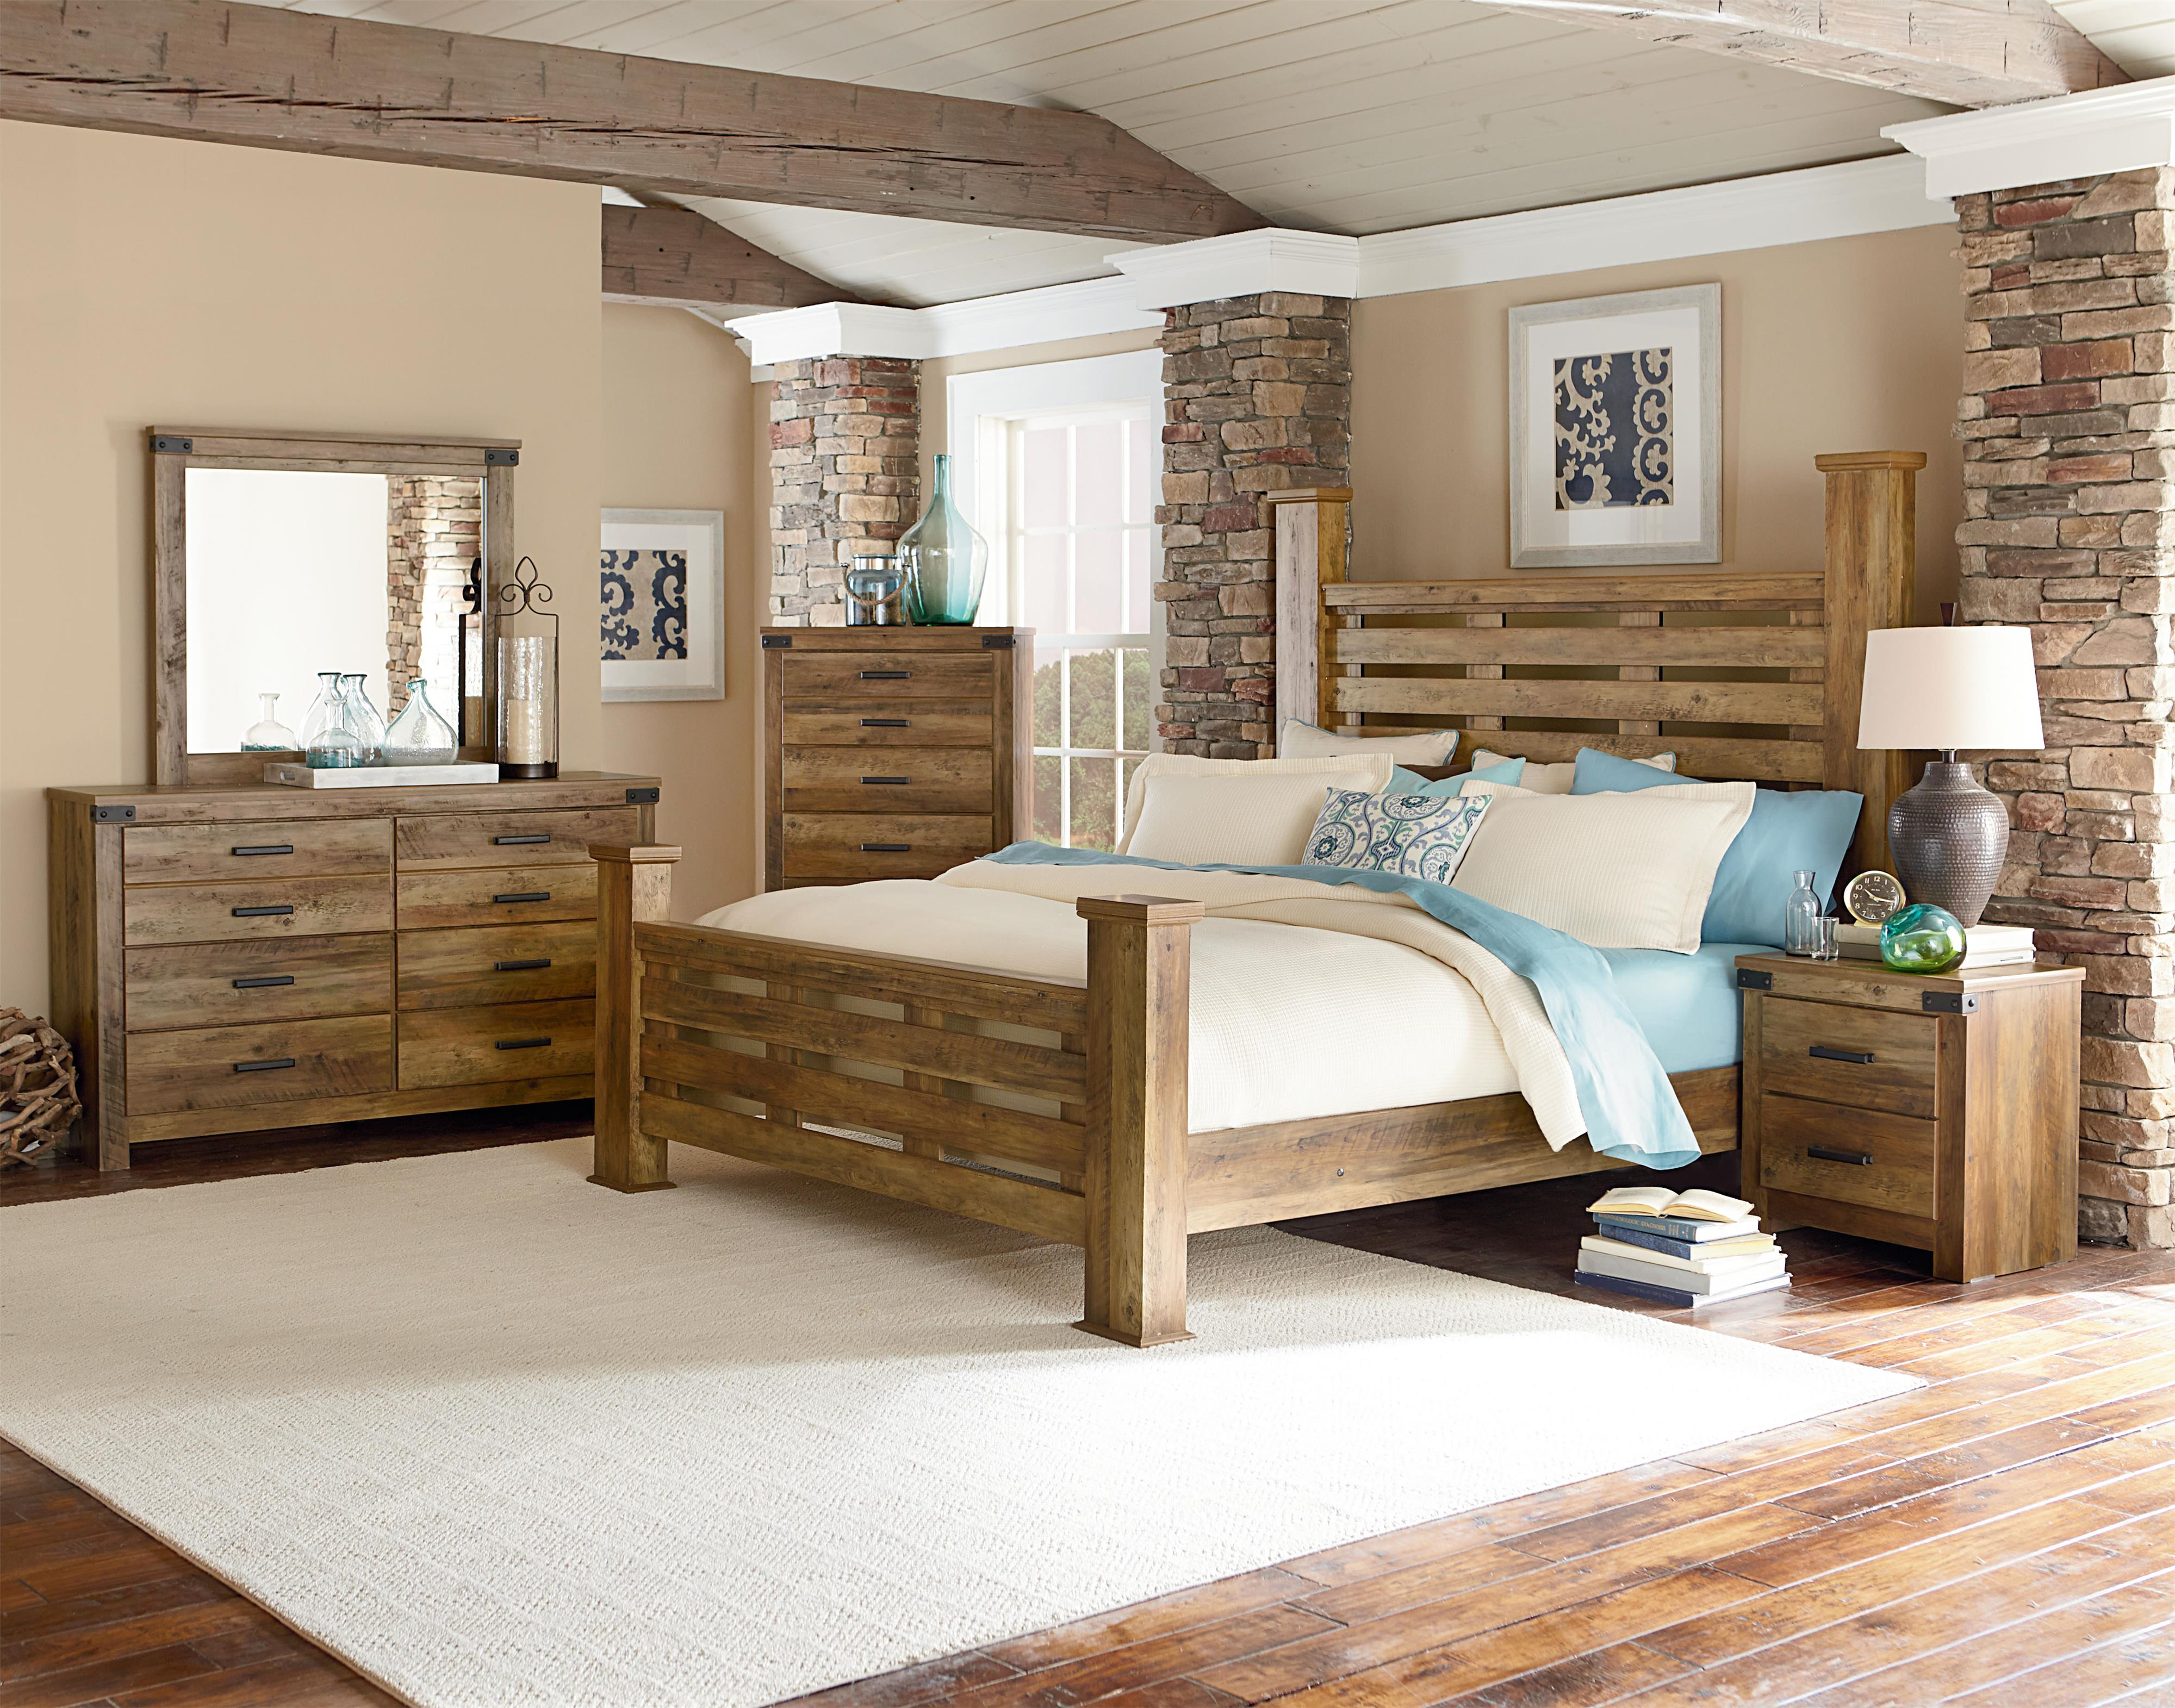 montana br bedroom panel furniture image product pc rm dark wood full zoom over sets espresso teen to roll